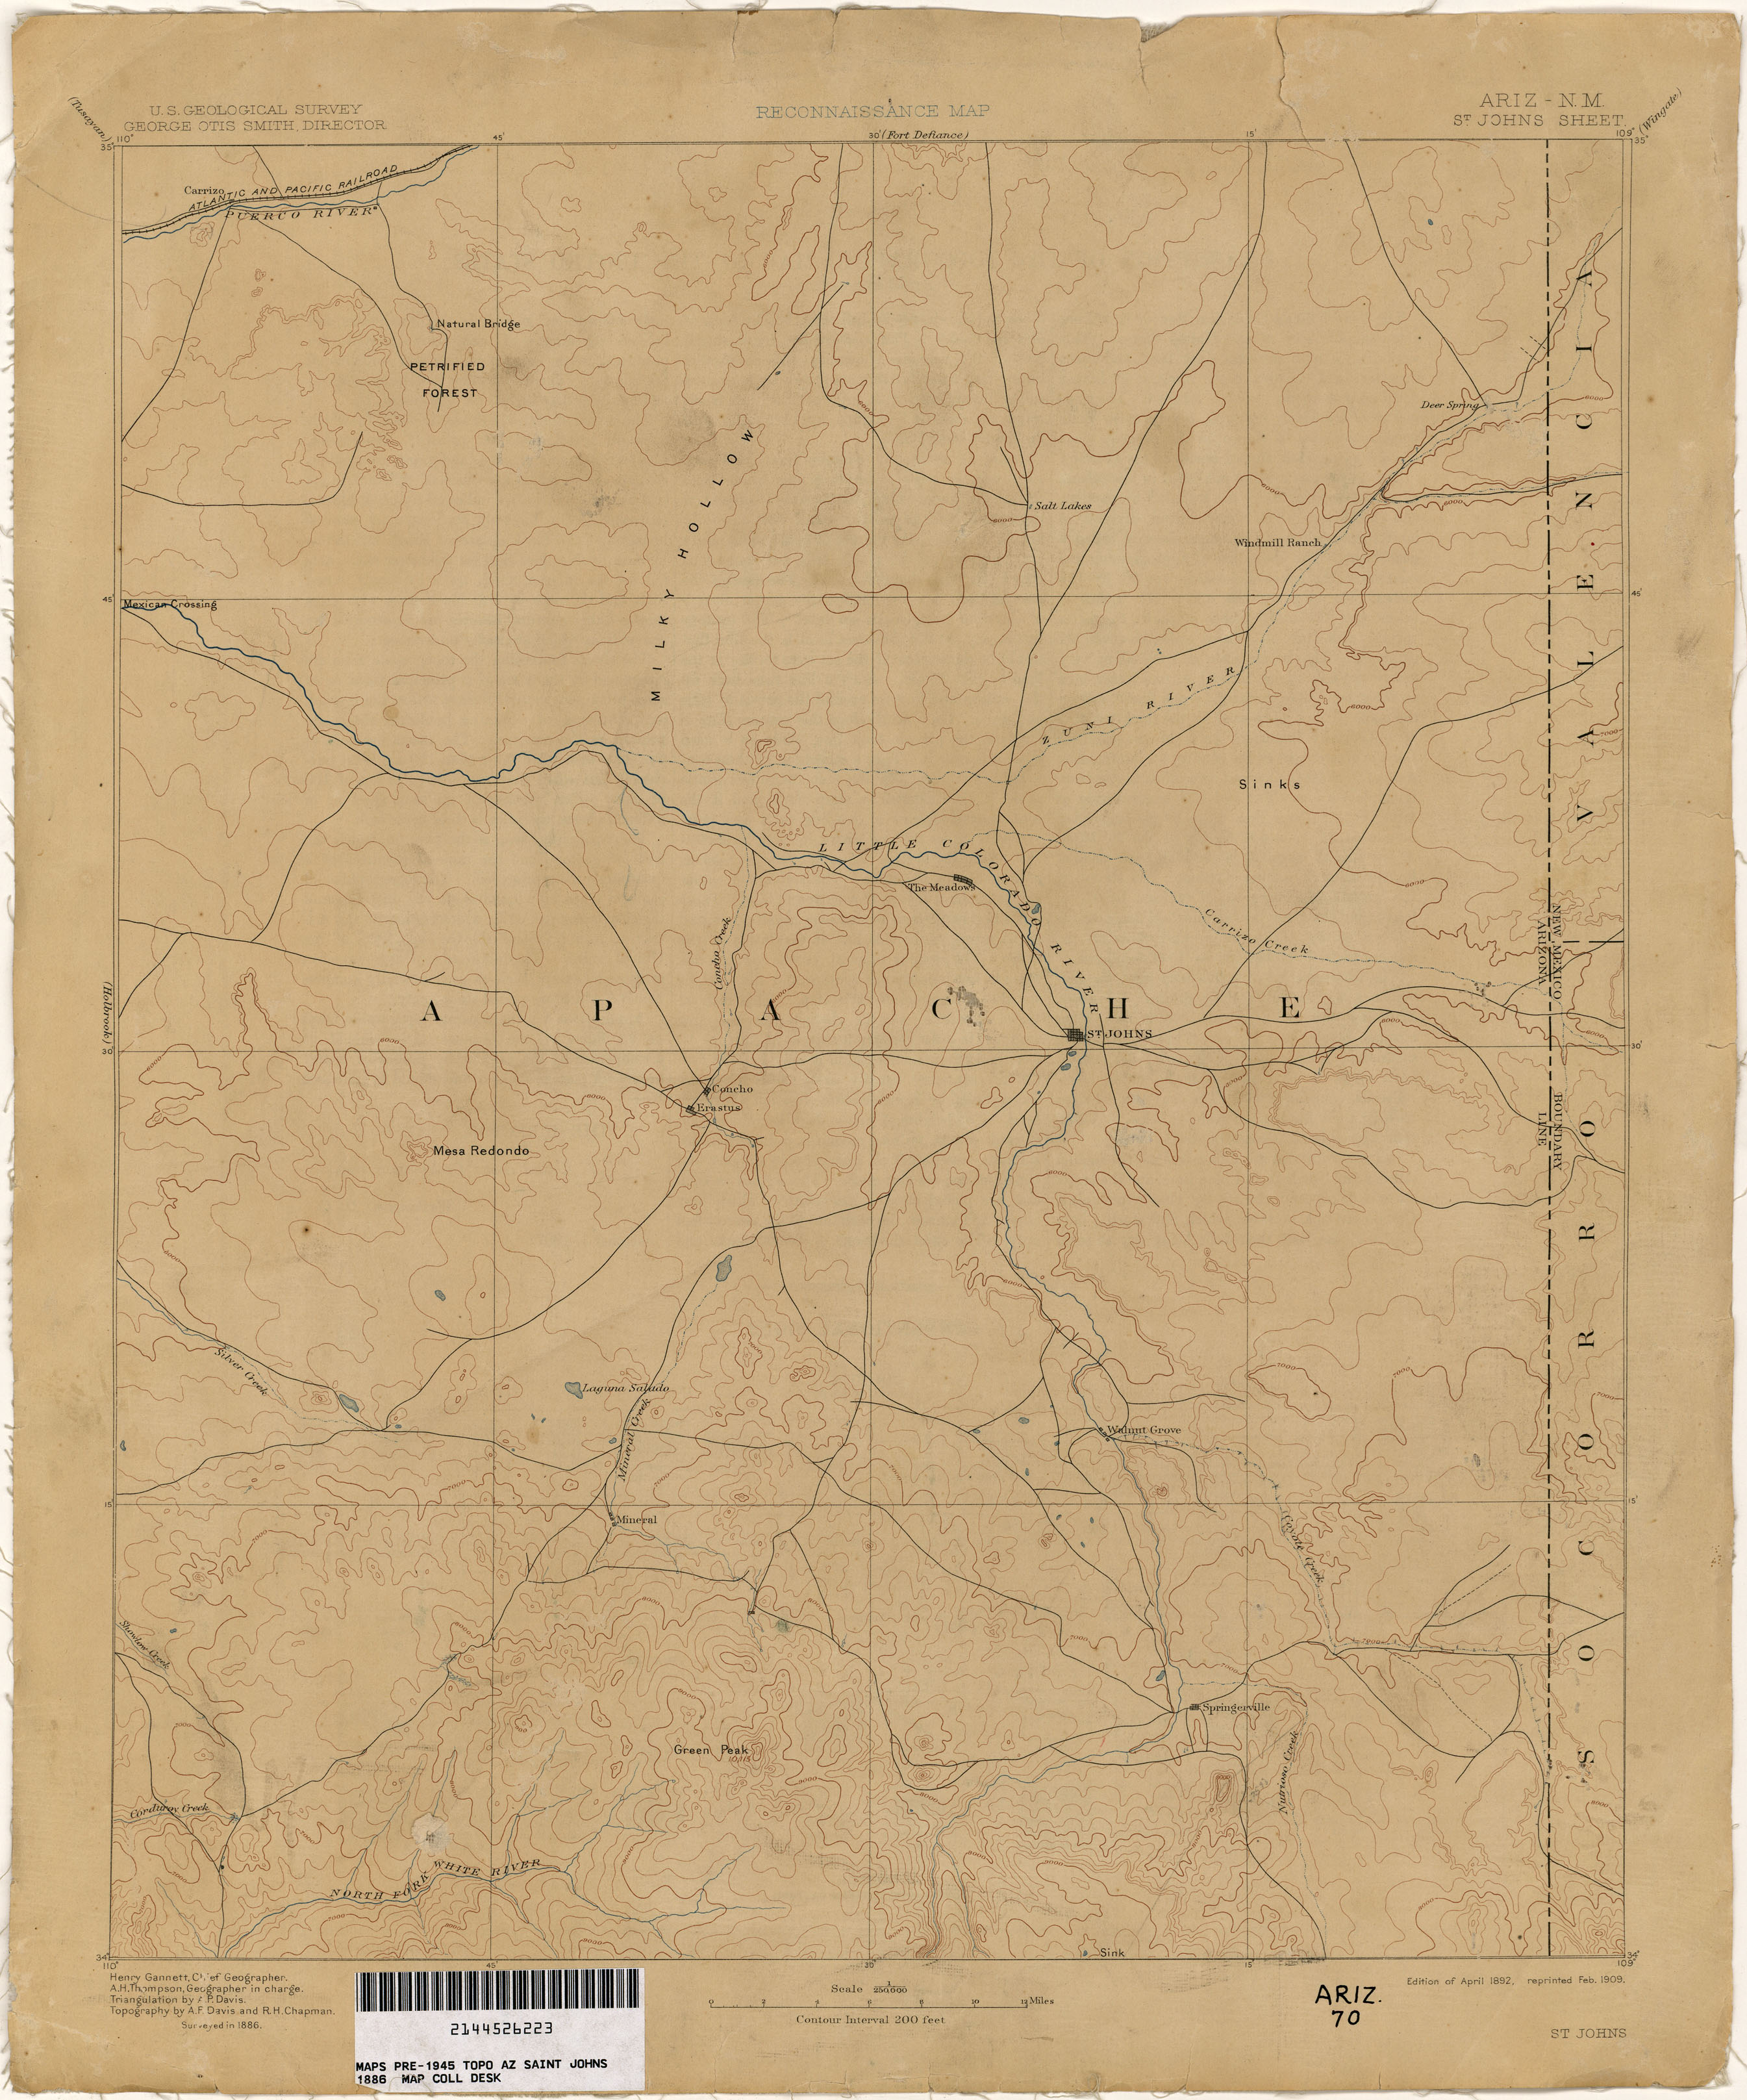 Map Of Saint Johns Arizona.Historical Maps In The Great Apache Forest